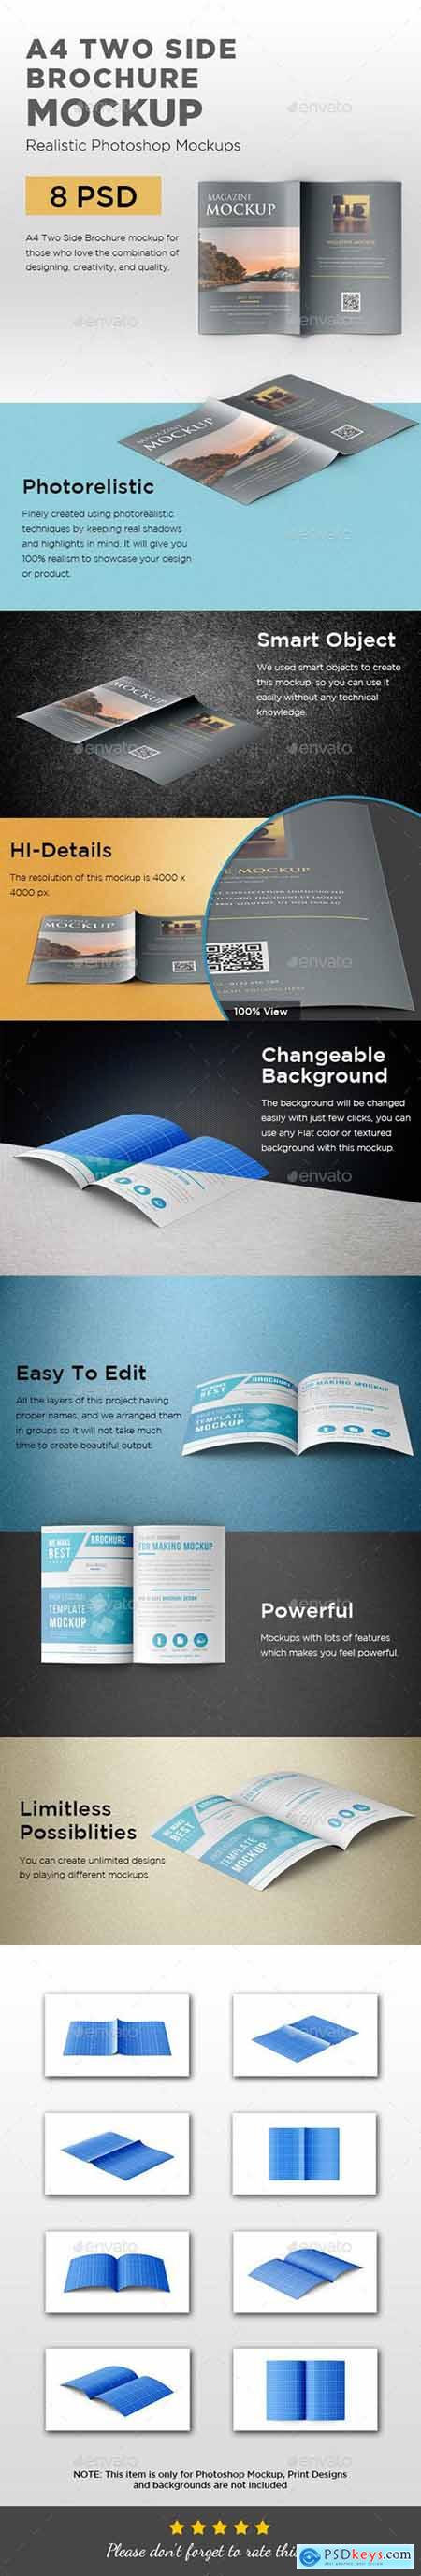 Graphicriver A4 Two Side Folded Brochure Mockup